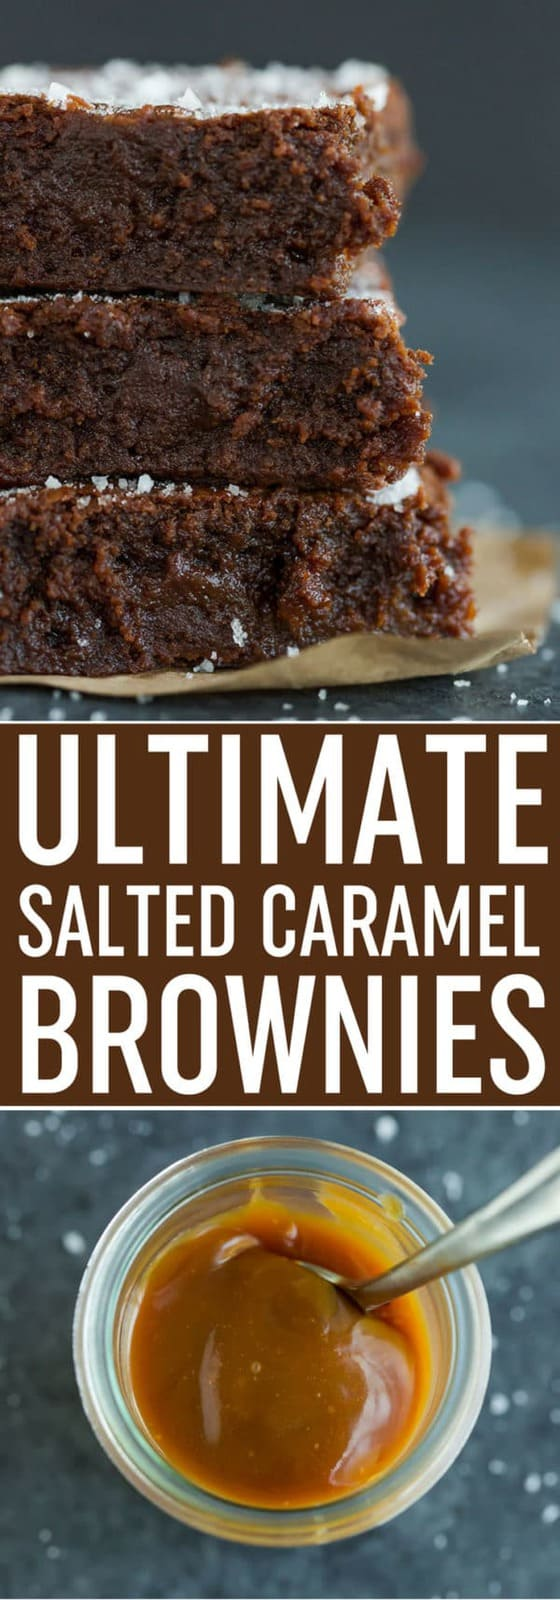 Sweet and Salty Brownies - The ULTIMATE salted caramel brownie!